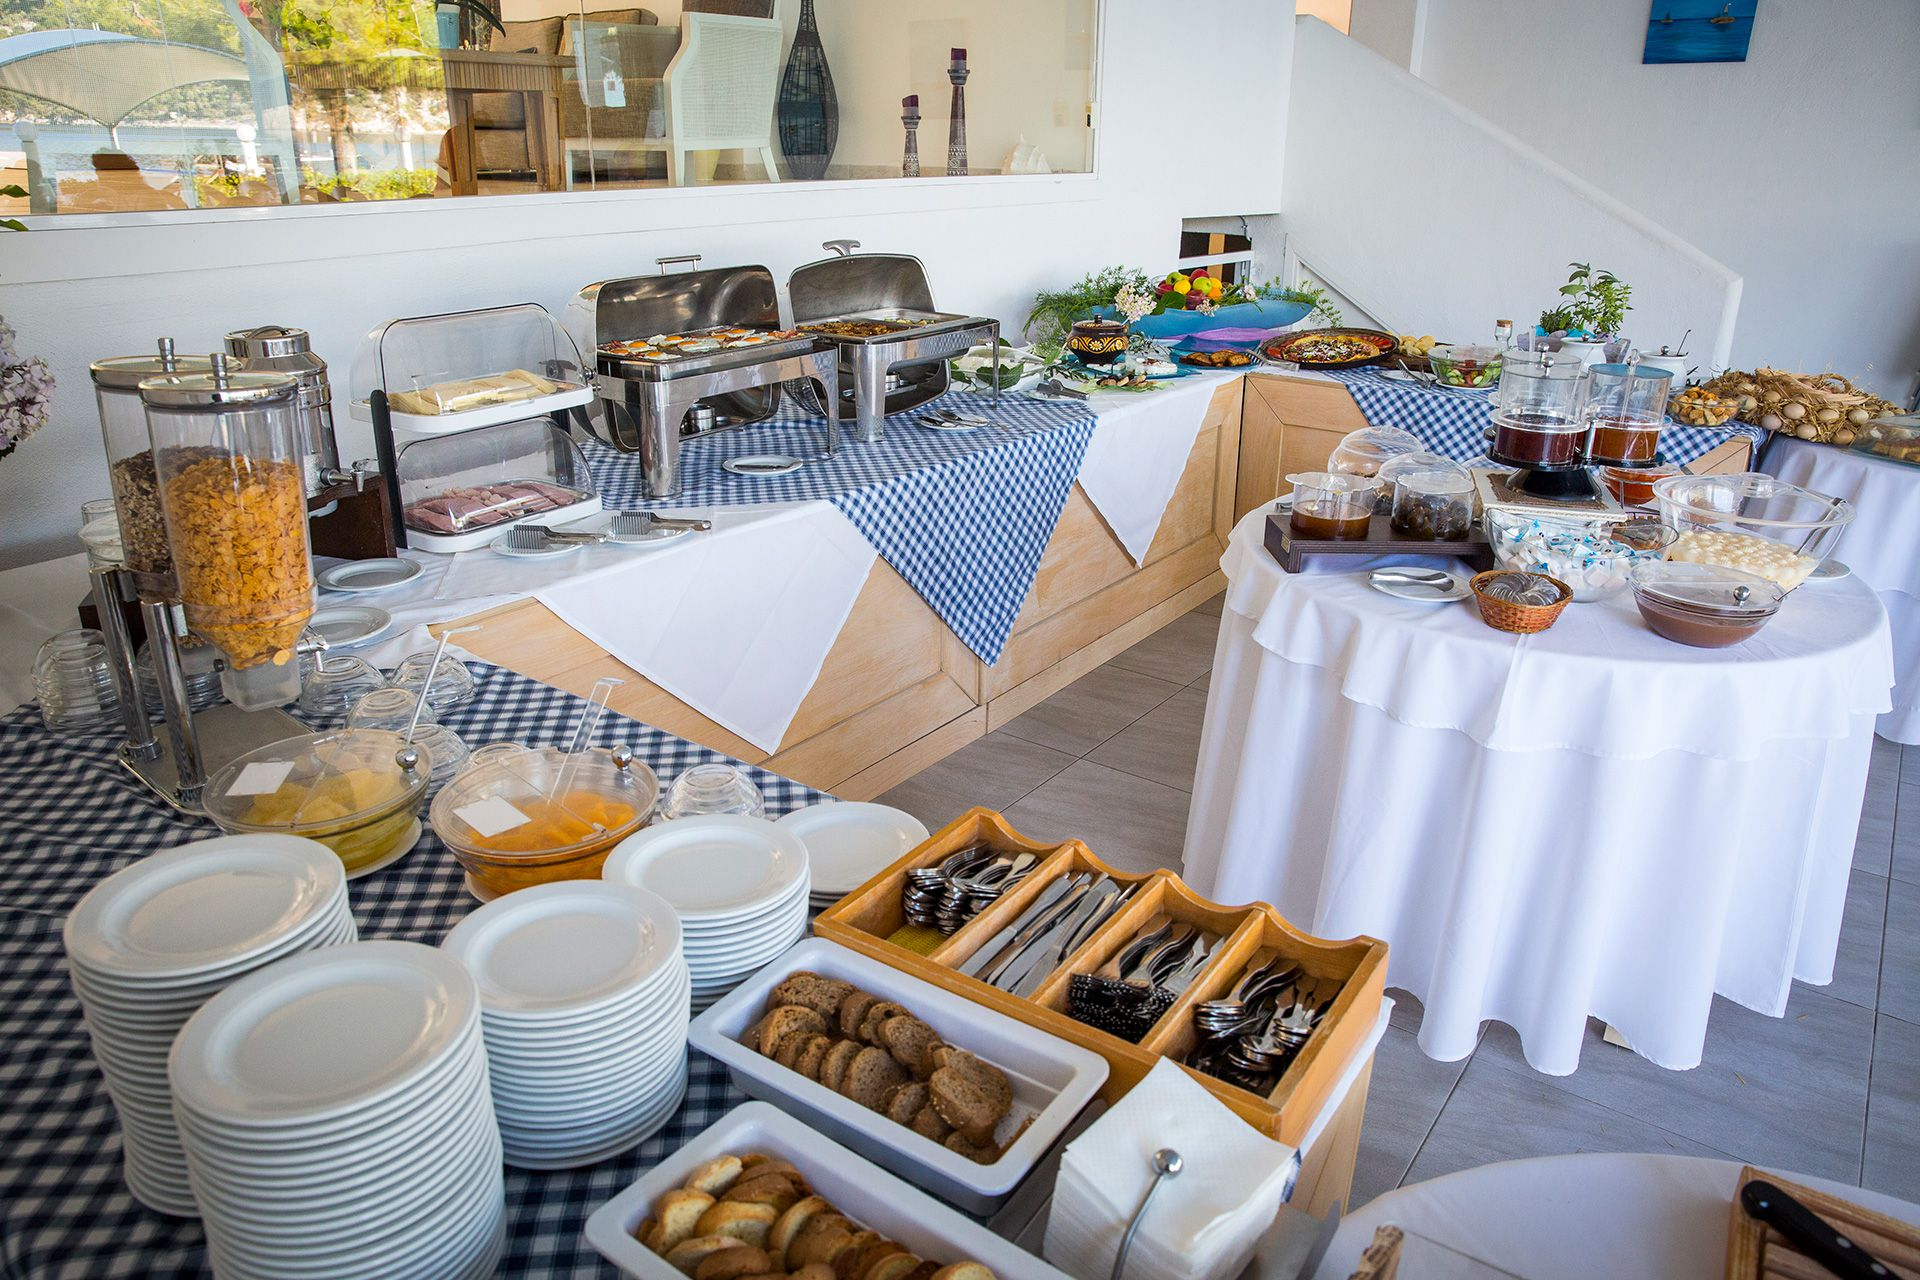 In the elaborately landscaped area of our hotel, a buffet of handmade Greek dishes is hosted.